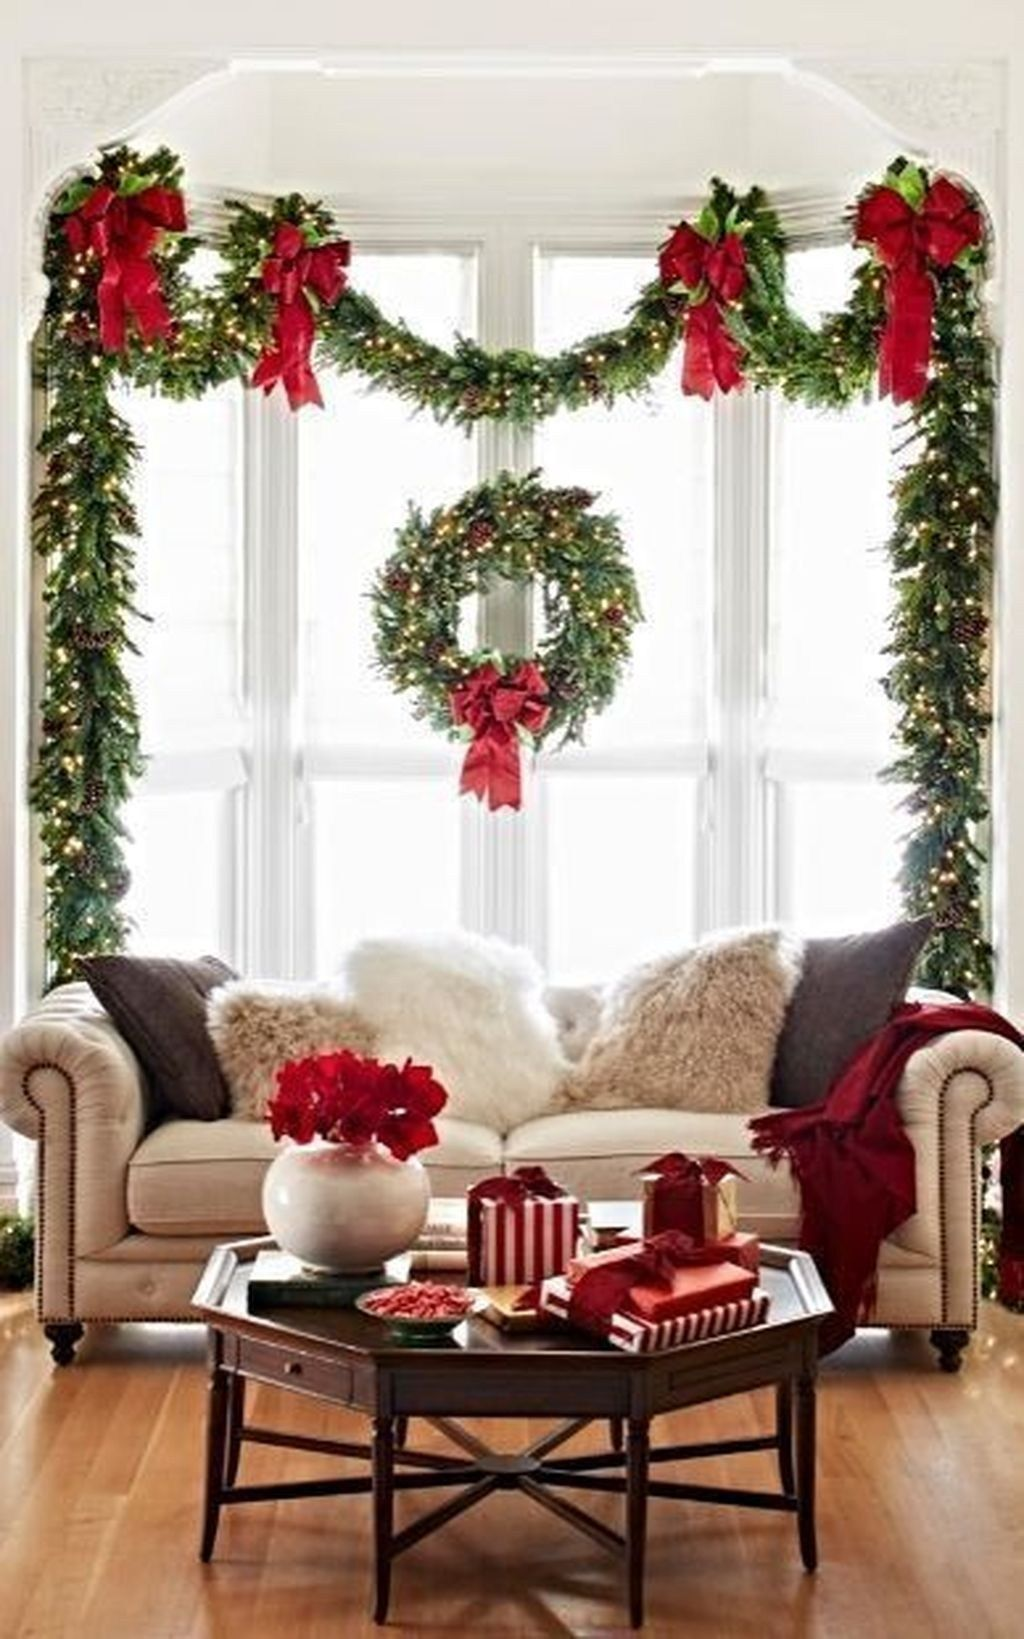 Simple Diy Christmas Home Decor Ideas 08 Christmas Decorations Outdoor Christmas Decorations Outdoor Christmas